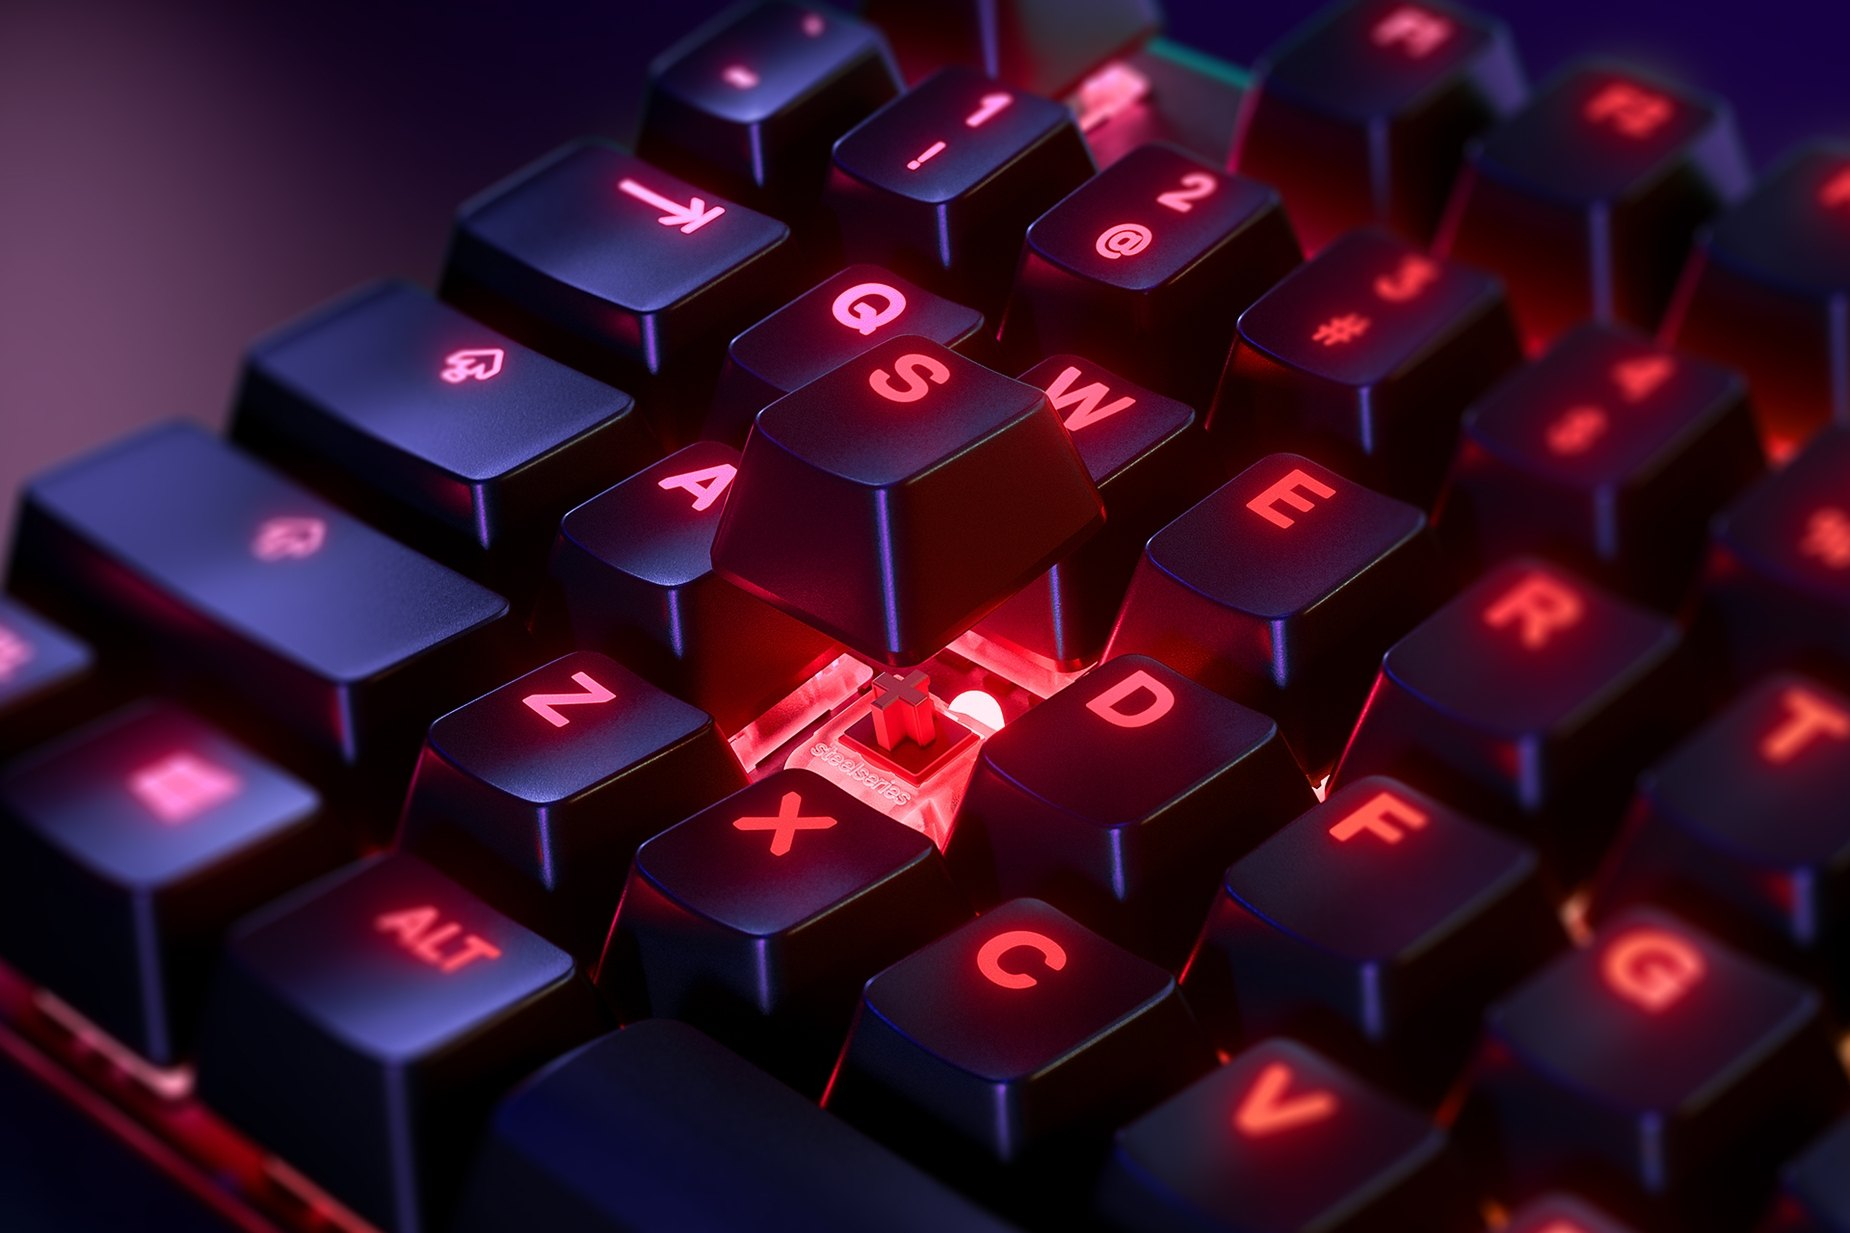 Zoomed in view of a single key on the Nordic-Apex 7 (Red Switch) gaming keyboard, the key is raised up to show the SteelSeries QX2 Mechanical RGB Switch underneath